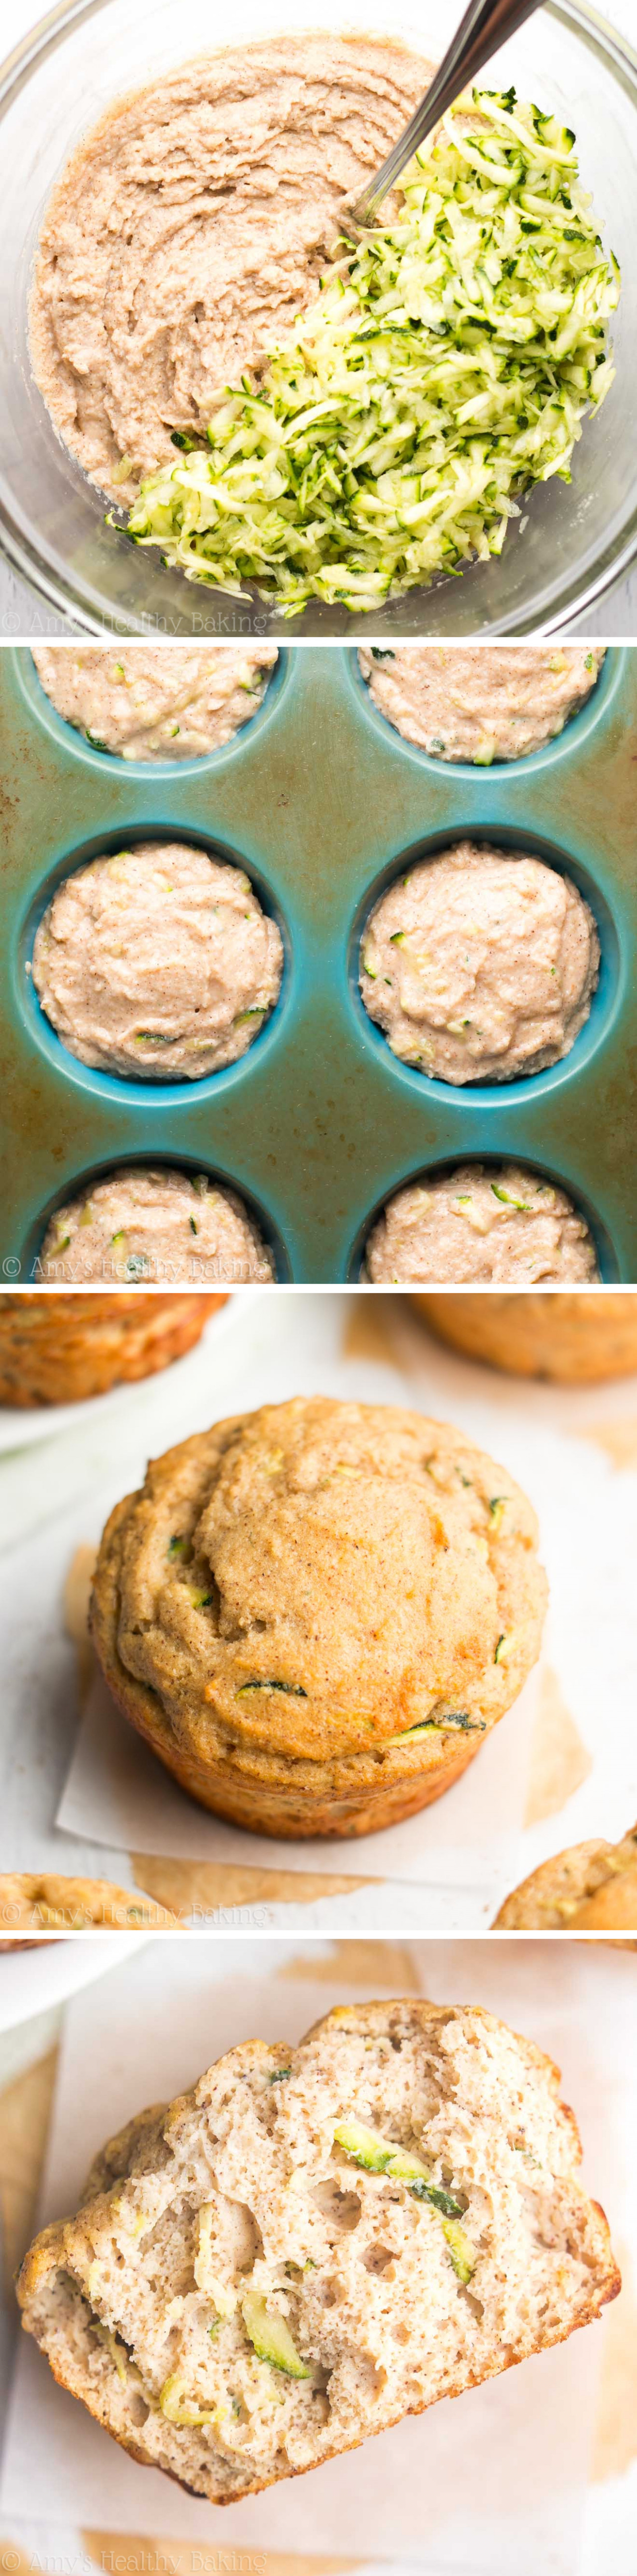 Zucchini Bread Protein Muffins   Amy's Healthy Baking